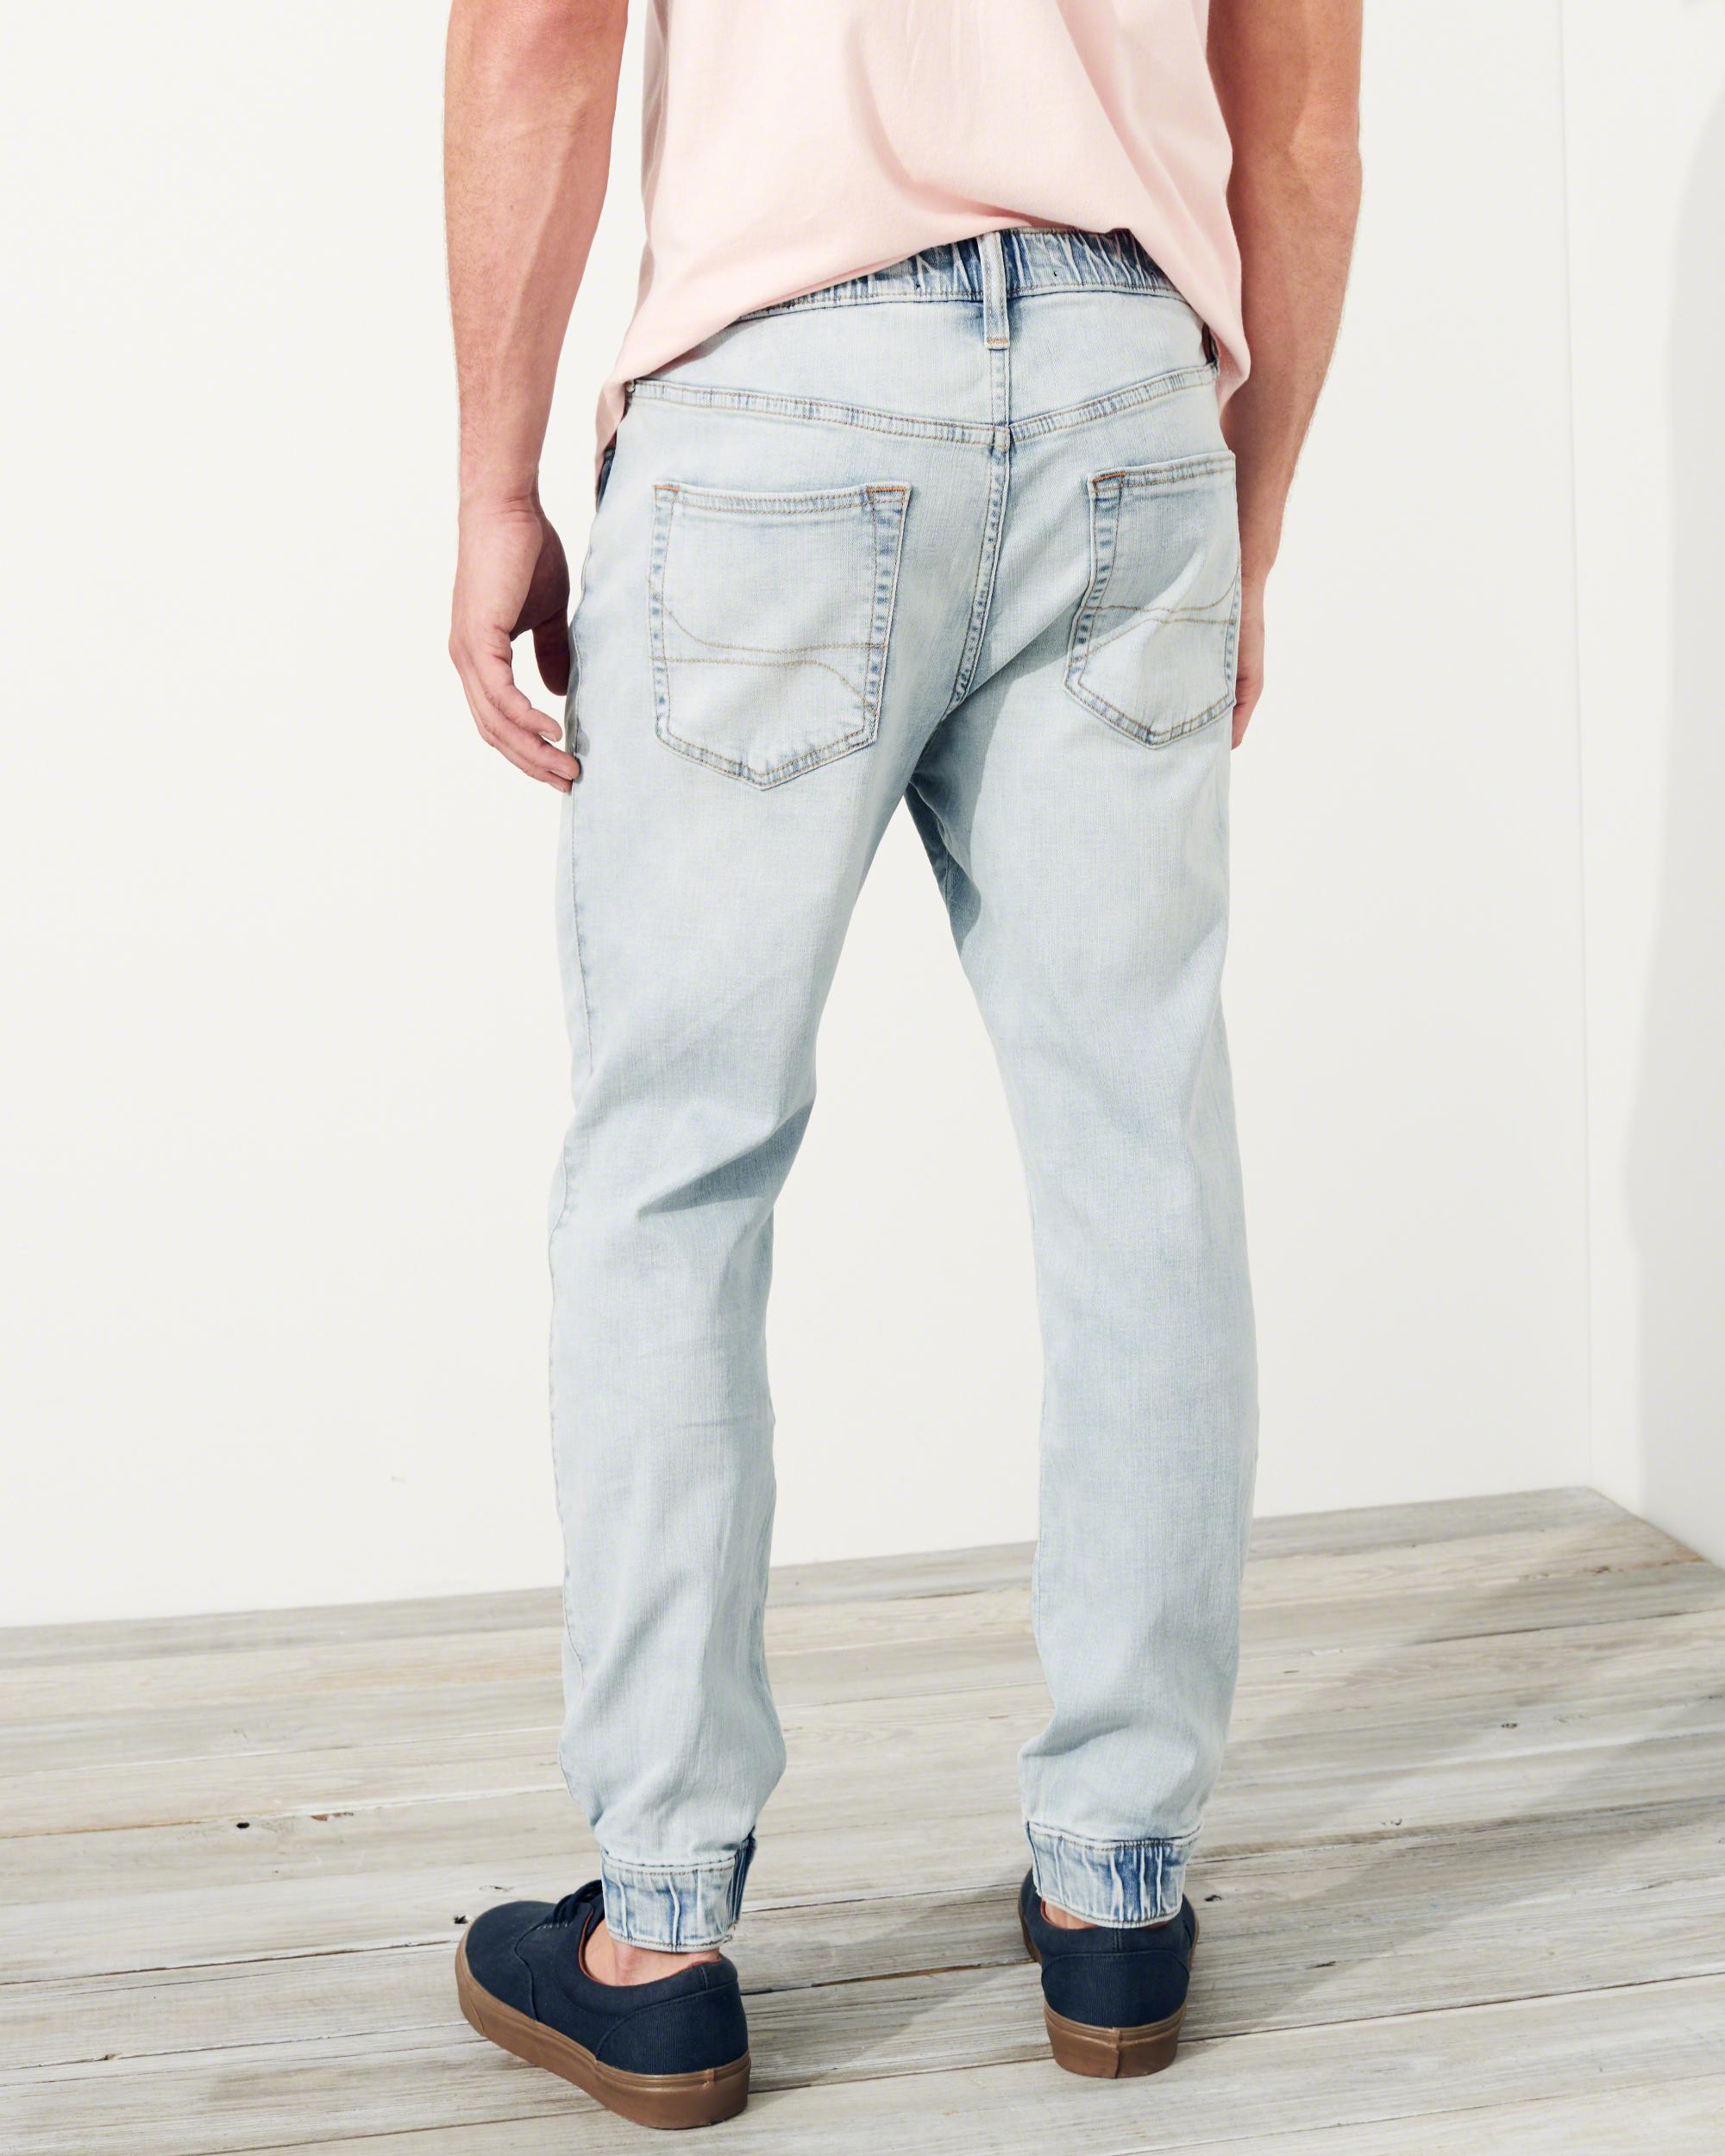 Lyst Hollister Advanced Stretch Denim Jogger Pants In Blue For Men Joger Riped Jeans Gallery